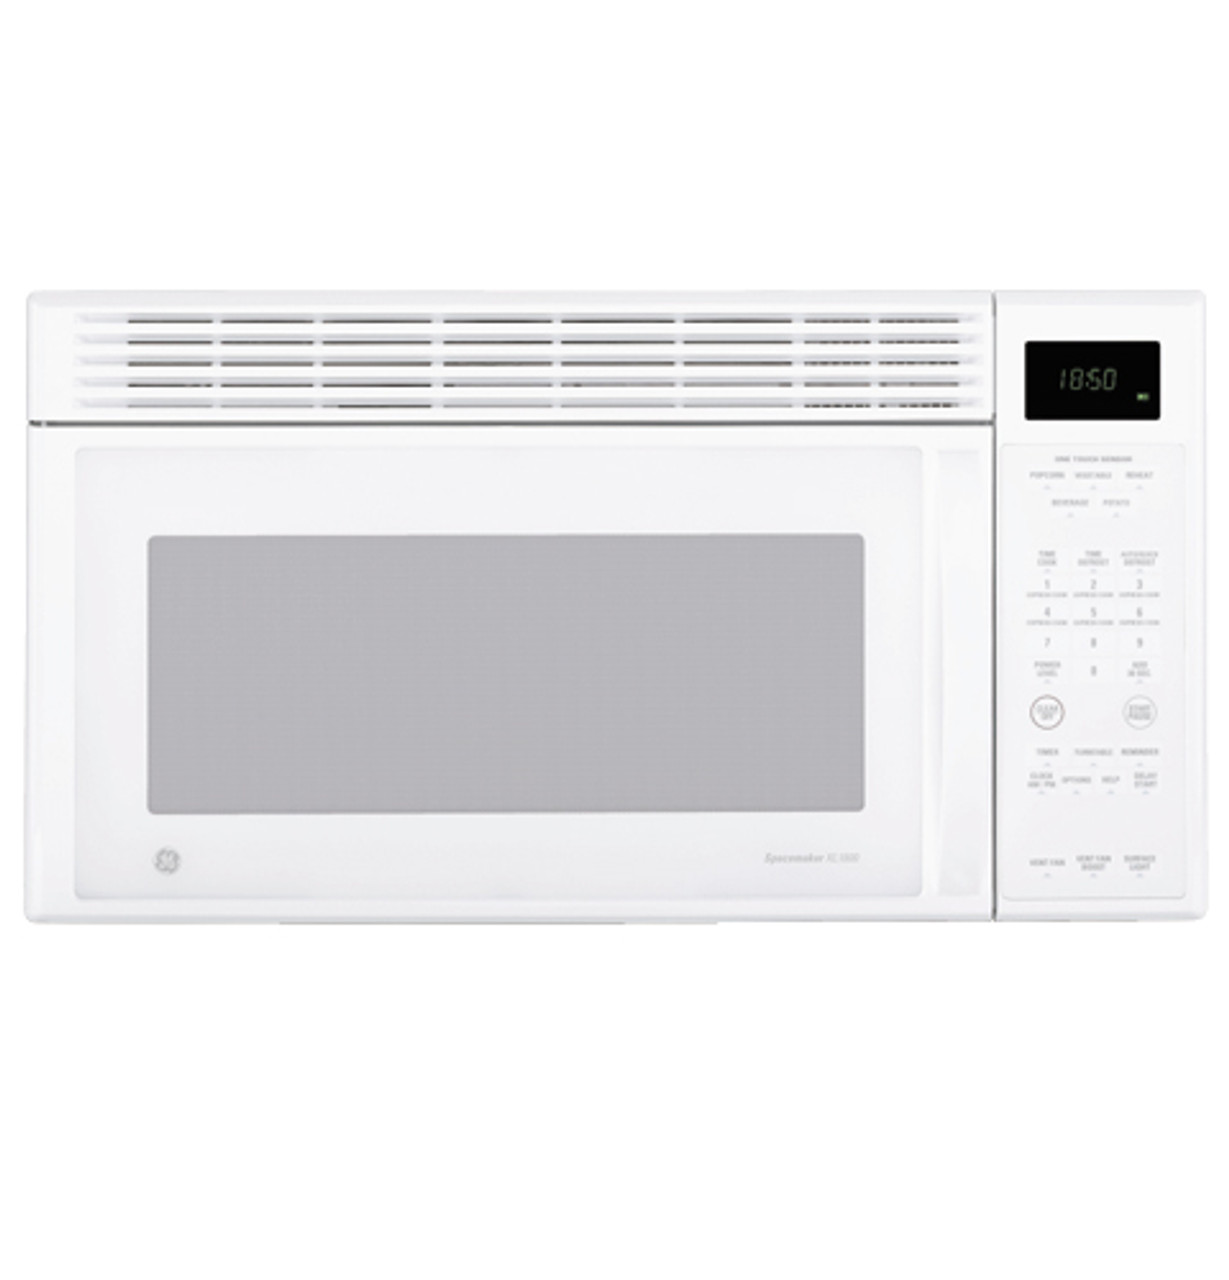 ge spacemaker xl1800 microwave oven jvm1850wd